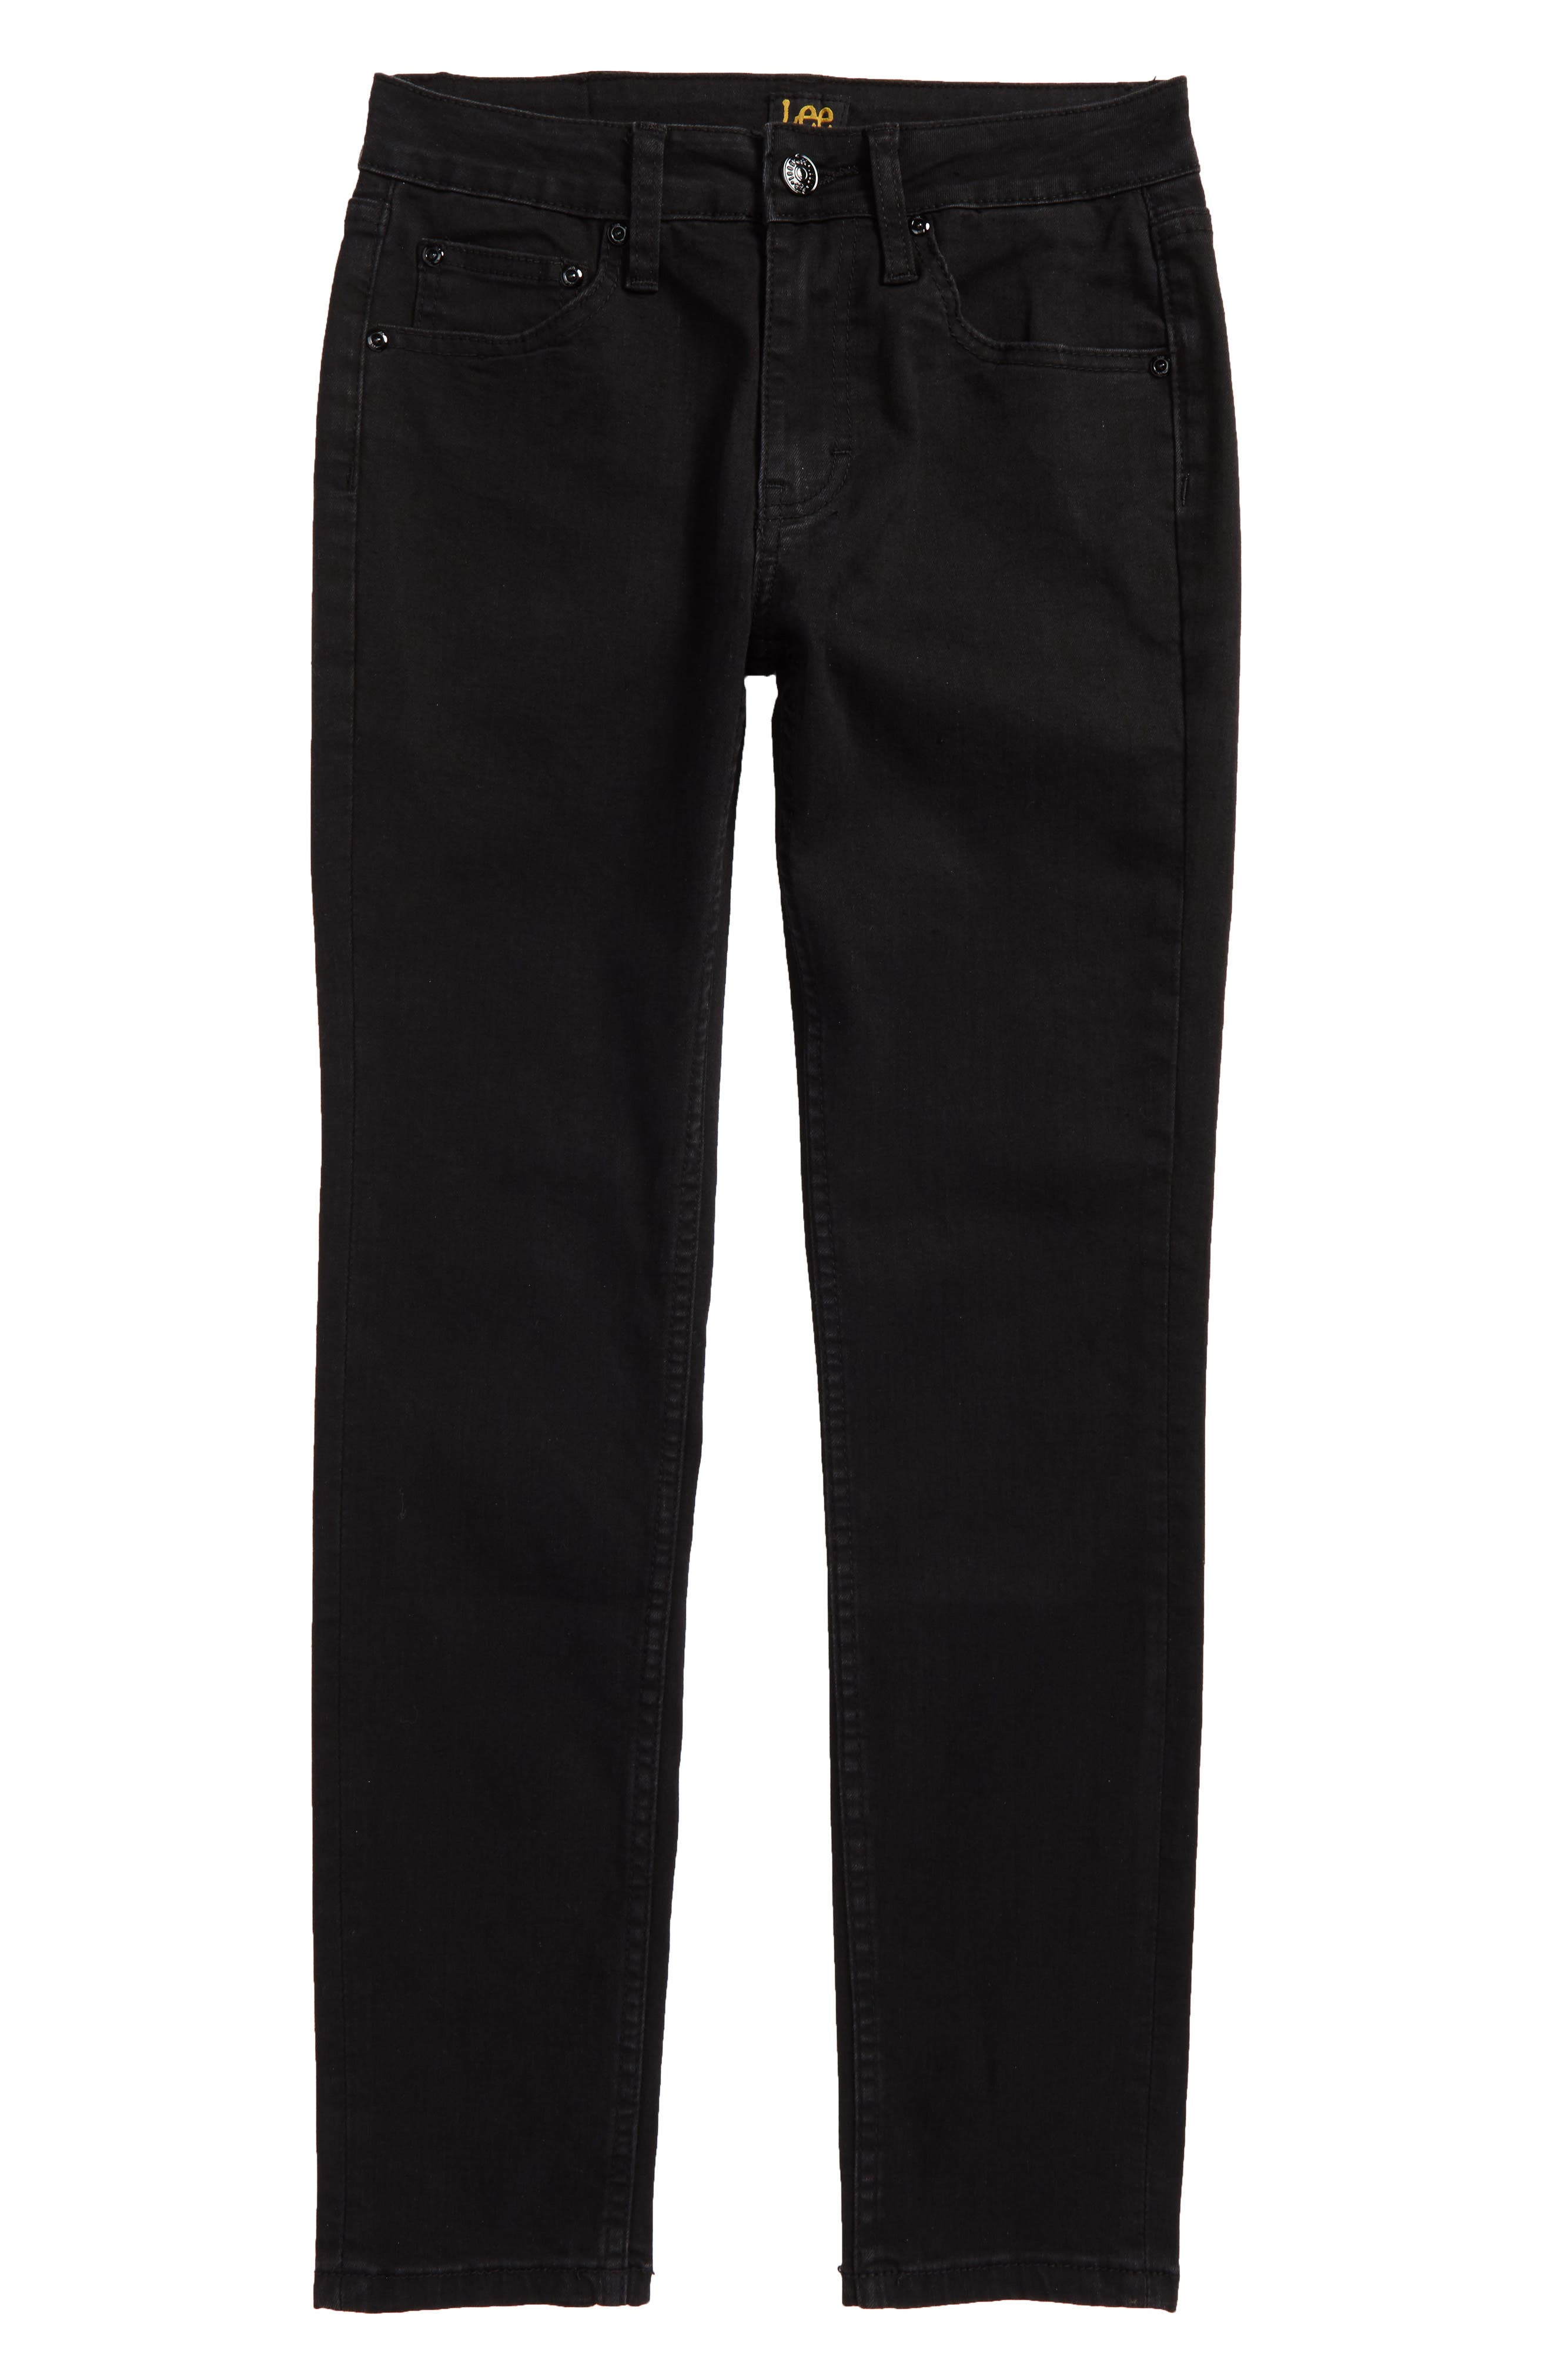 Stretch Skinny Jeans,                             Main thumbnail 1, color,                             Jet